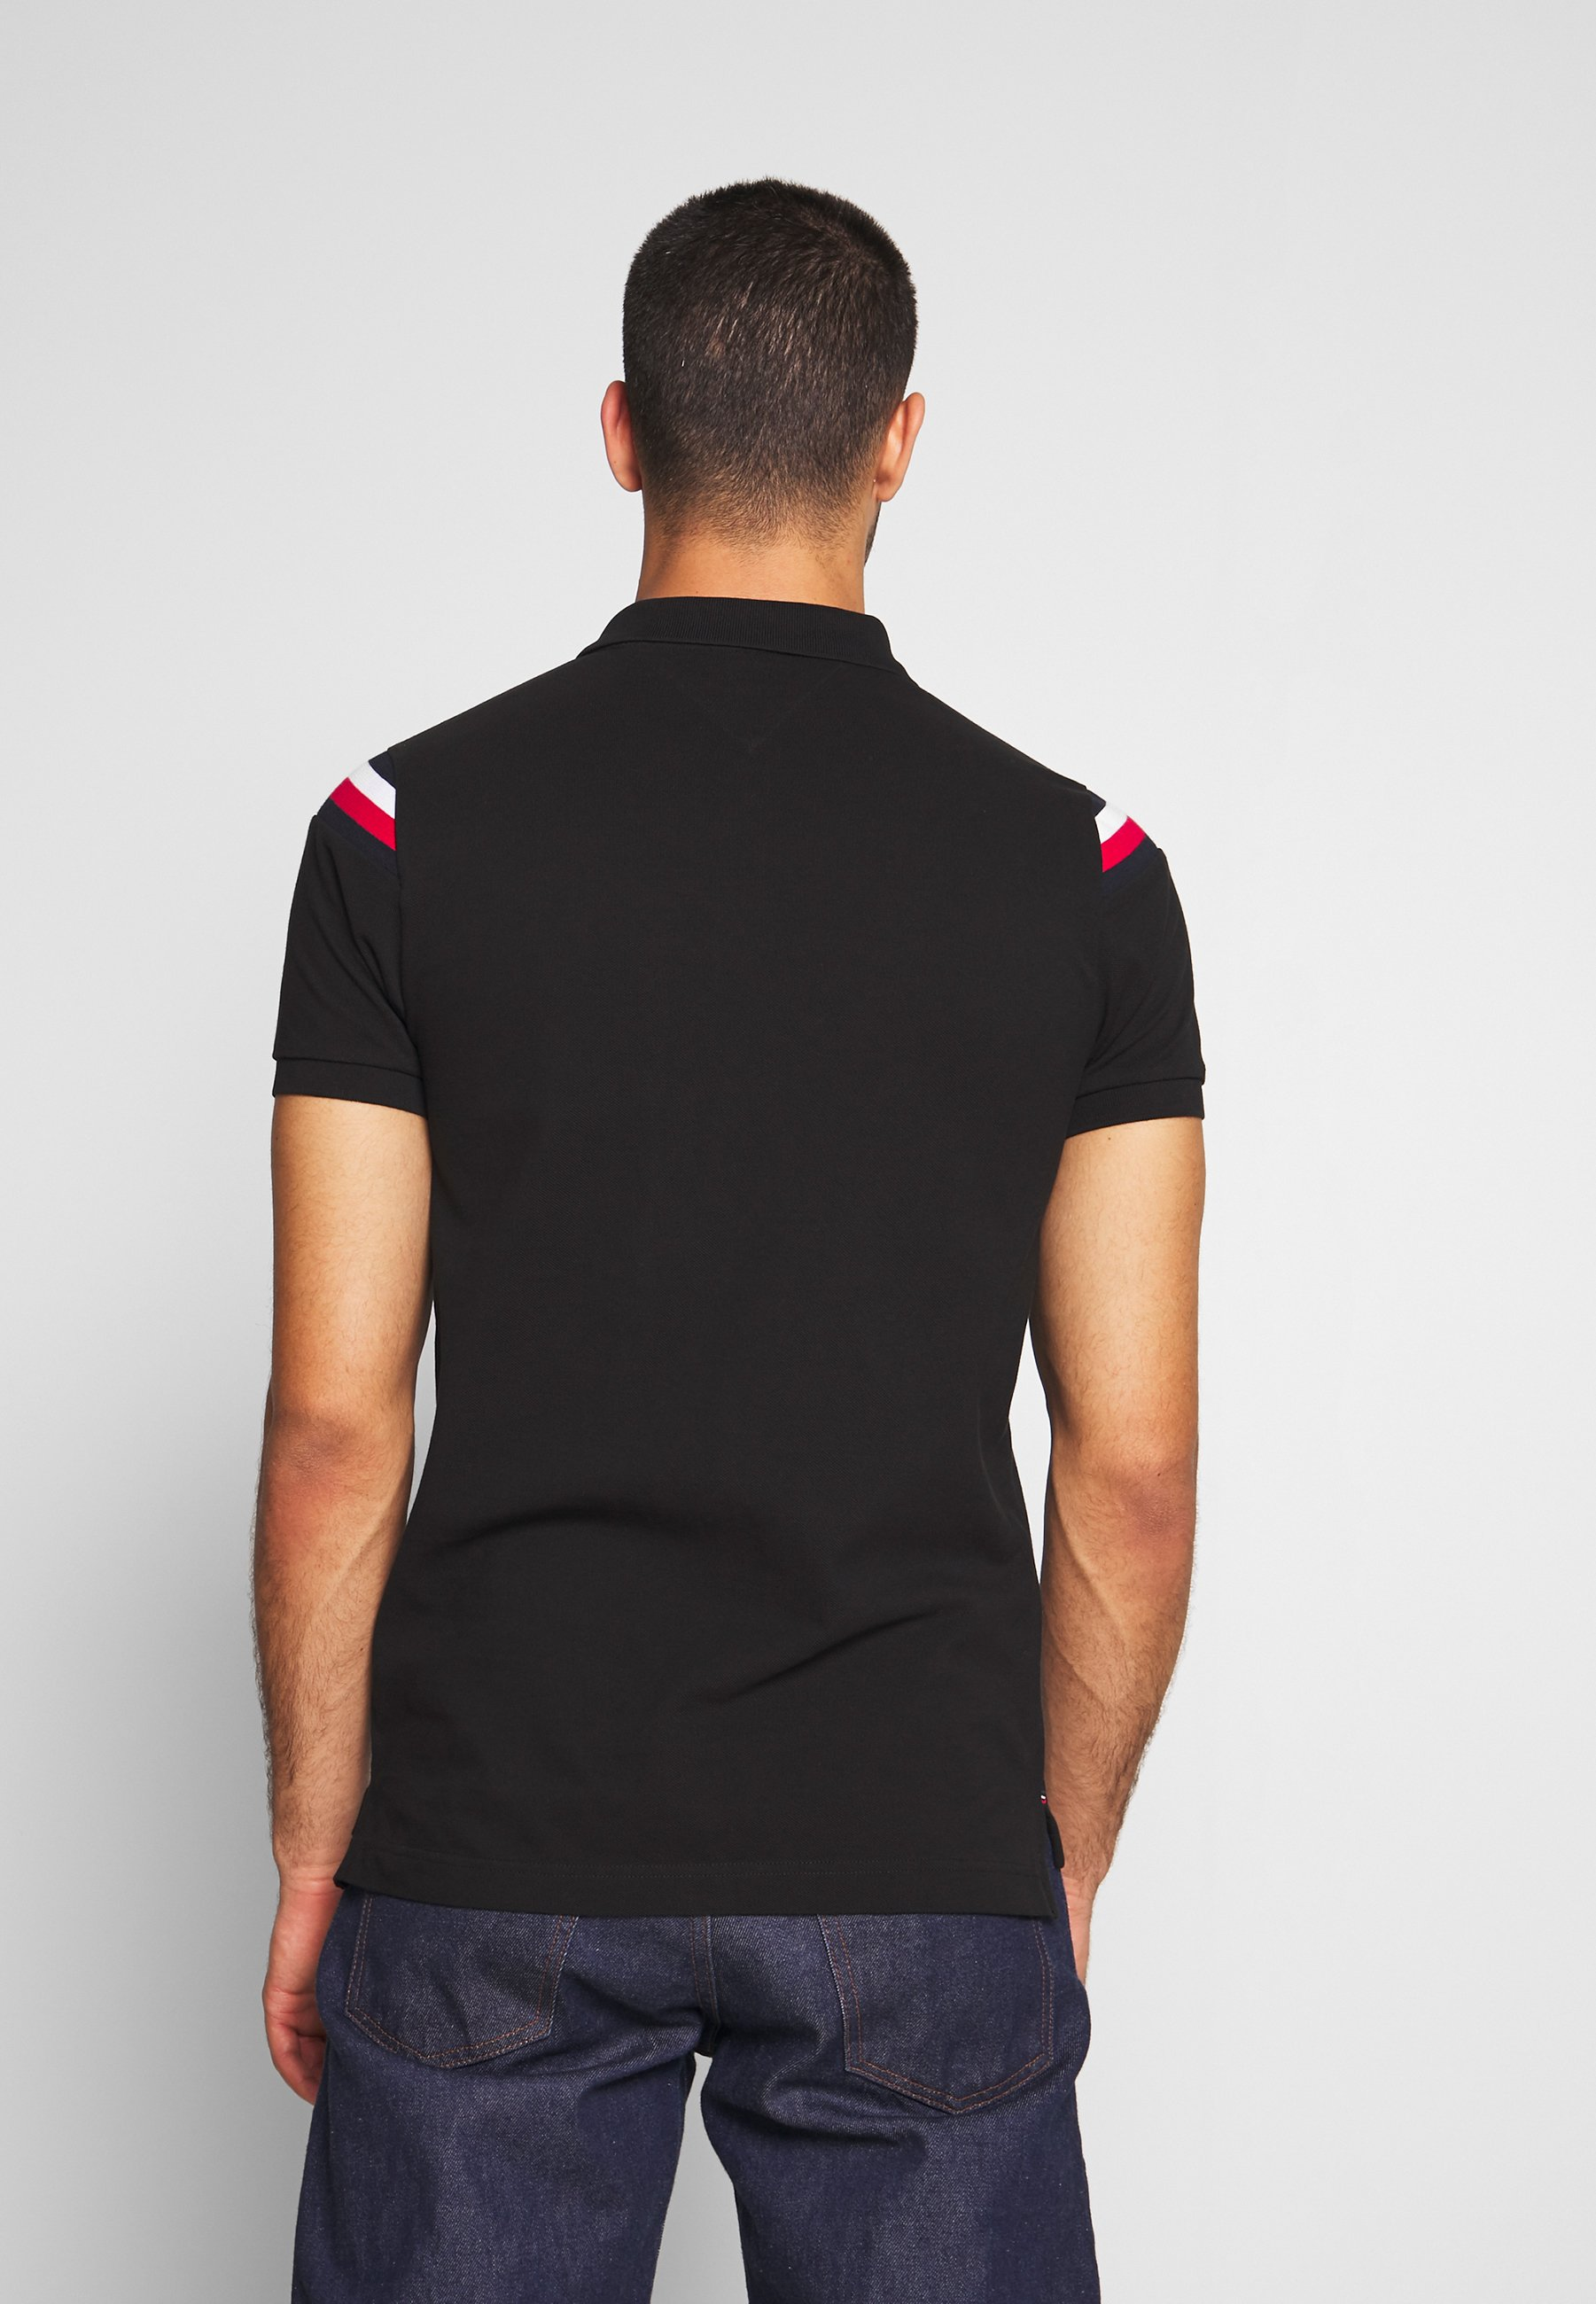 Tommy Hilfiger Shoulder Insert Slim - Piké Black